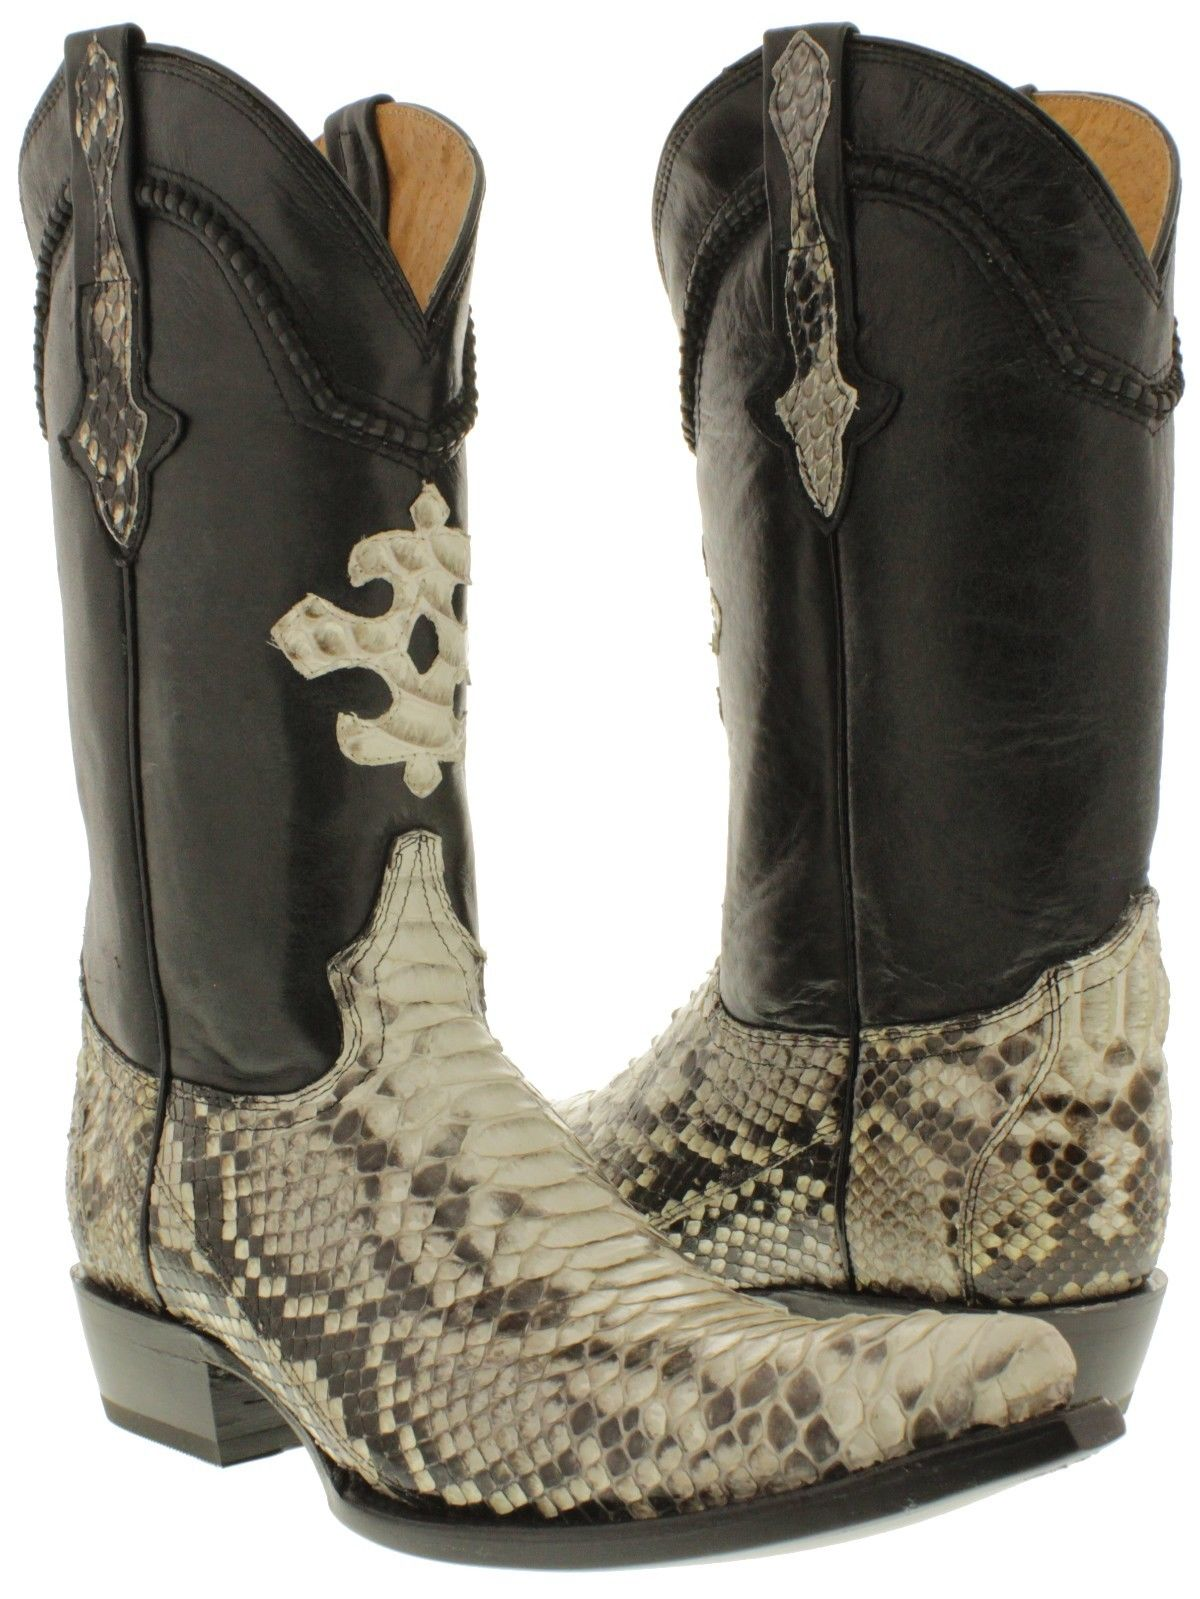 Mens Real Python Snake Skin Genuine Leather Cowboy Boots